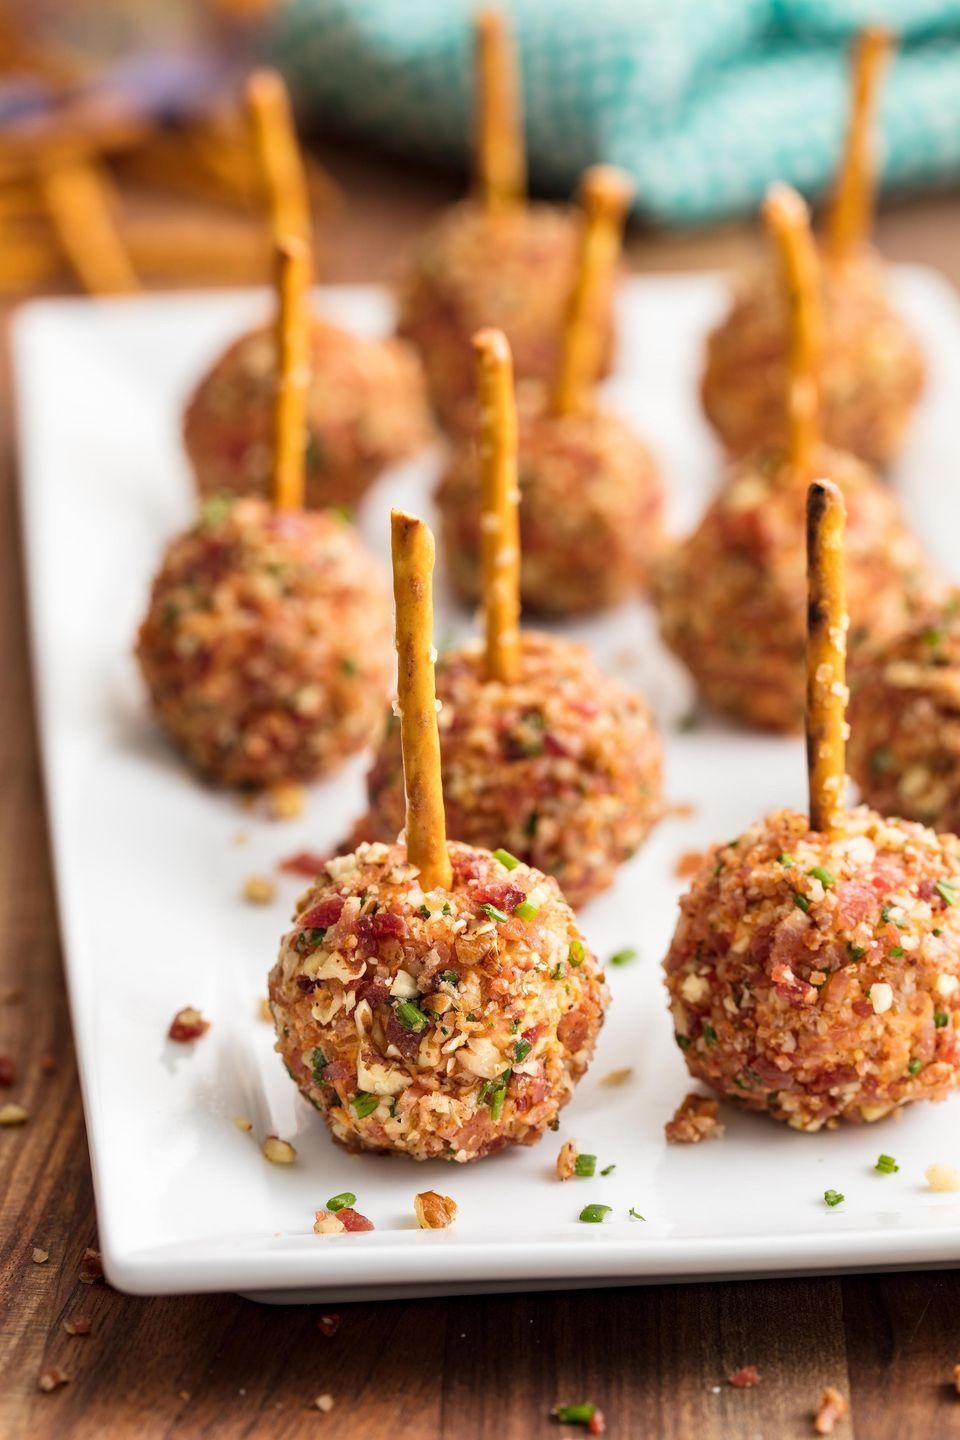 "<p>Our favorite word to hear in front of cheese is ""loaded.""</p><p>Get the recipe from <a href=""https://www.delish.com/cooking/recipe-ideas/recipes/a50204/cheese-ball-bites-recipe/"" rel=""nofollow noopener"" target=""_blank"" data-ylk=""slk:Delish"" class=""link rapid-noclick-resp"">Delish</a>.</p>"